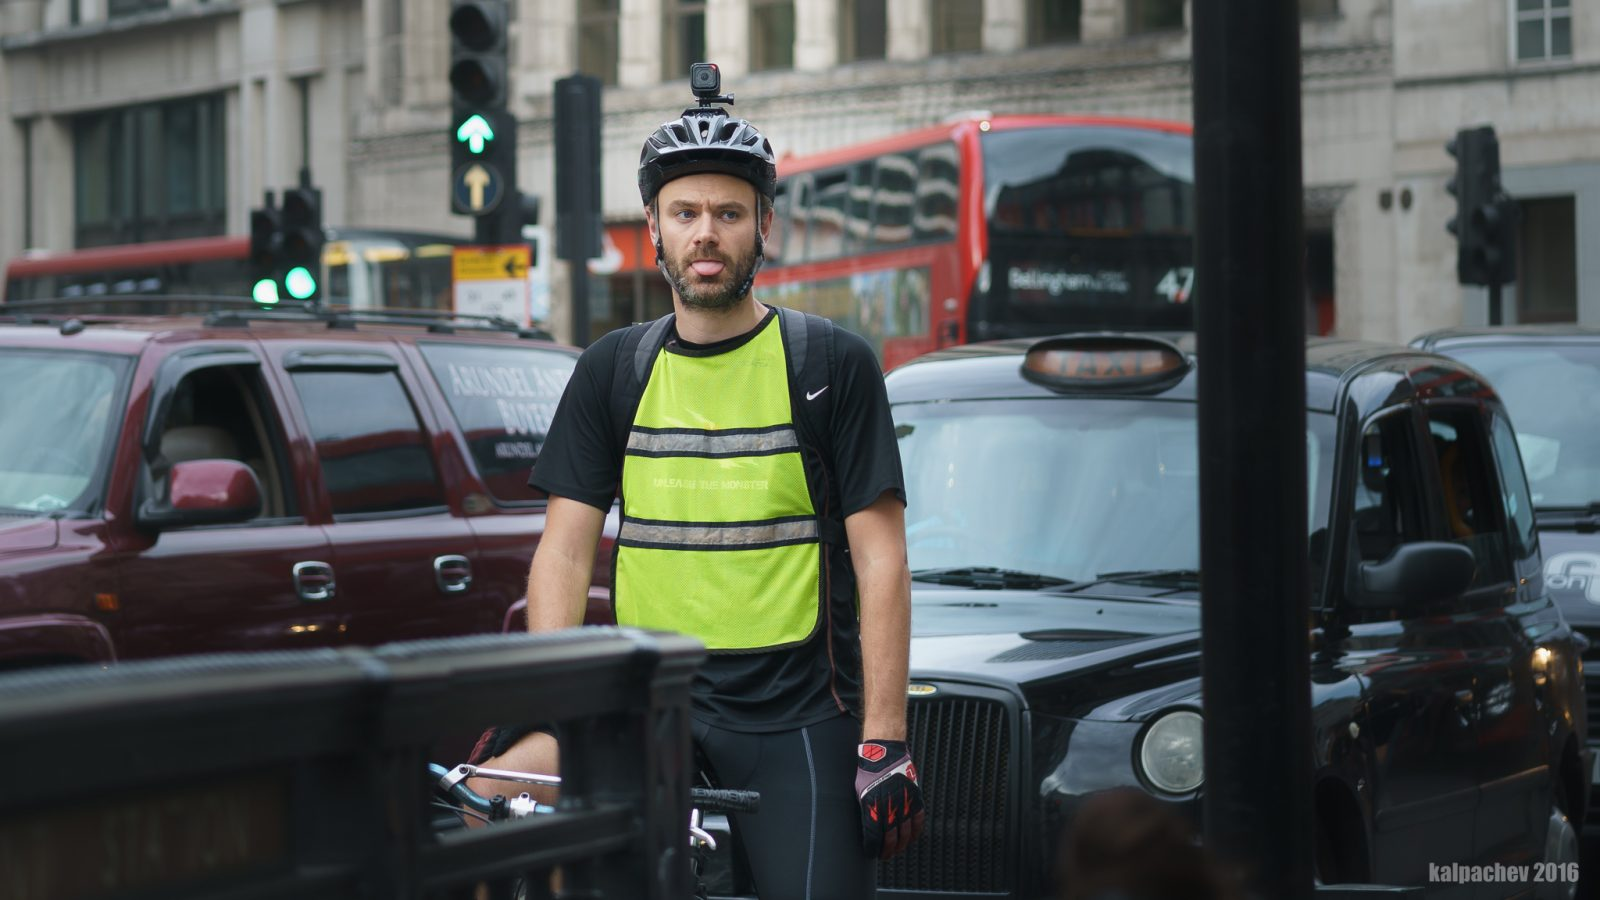 Cyclist at central London 12 Sep 2016